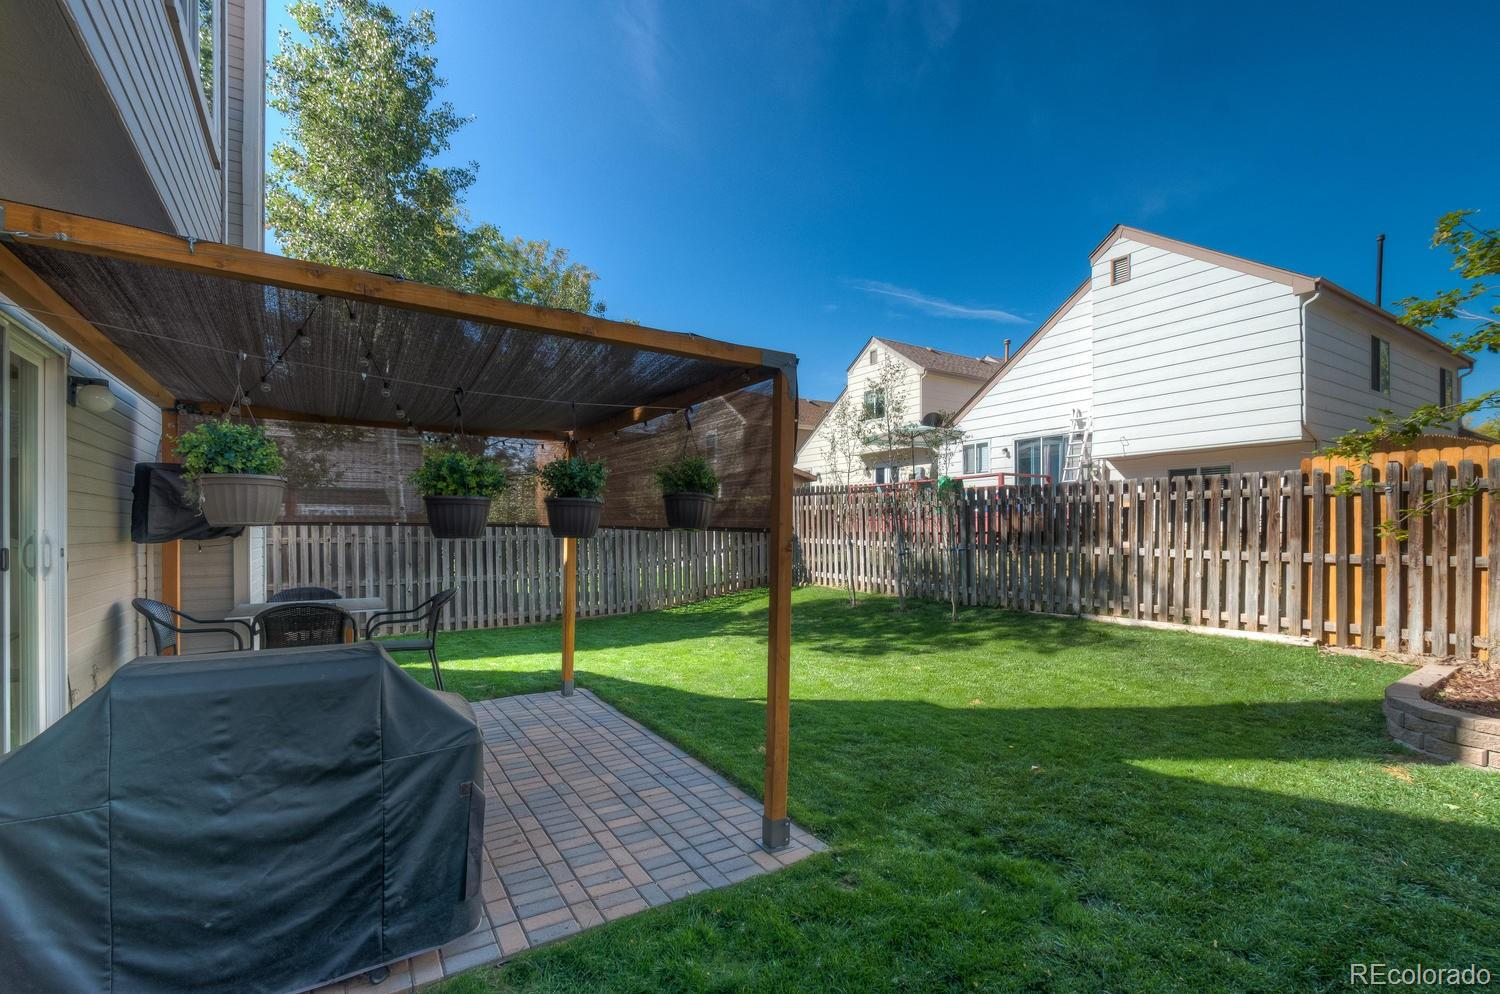 MLS# 2006537 - 29 - 5629 S Youngfield Way, Littleton, CO 80127